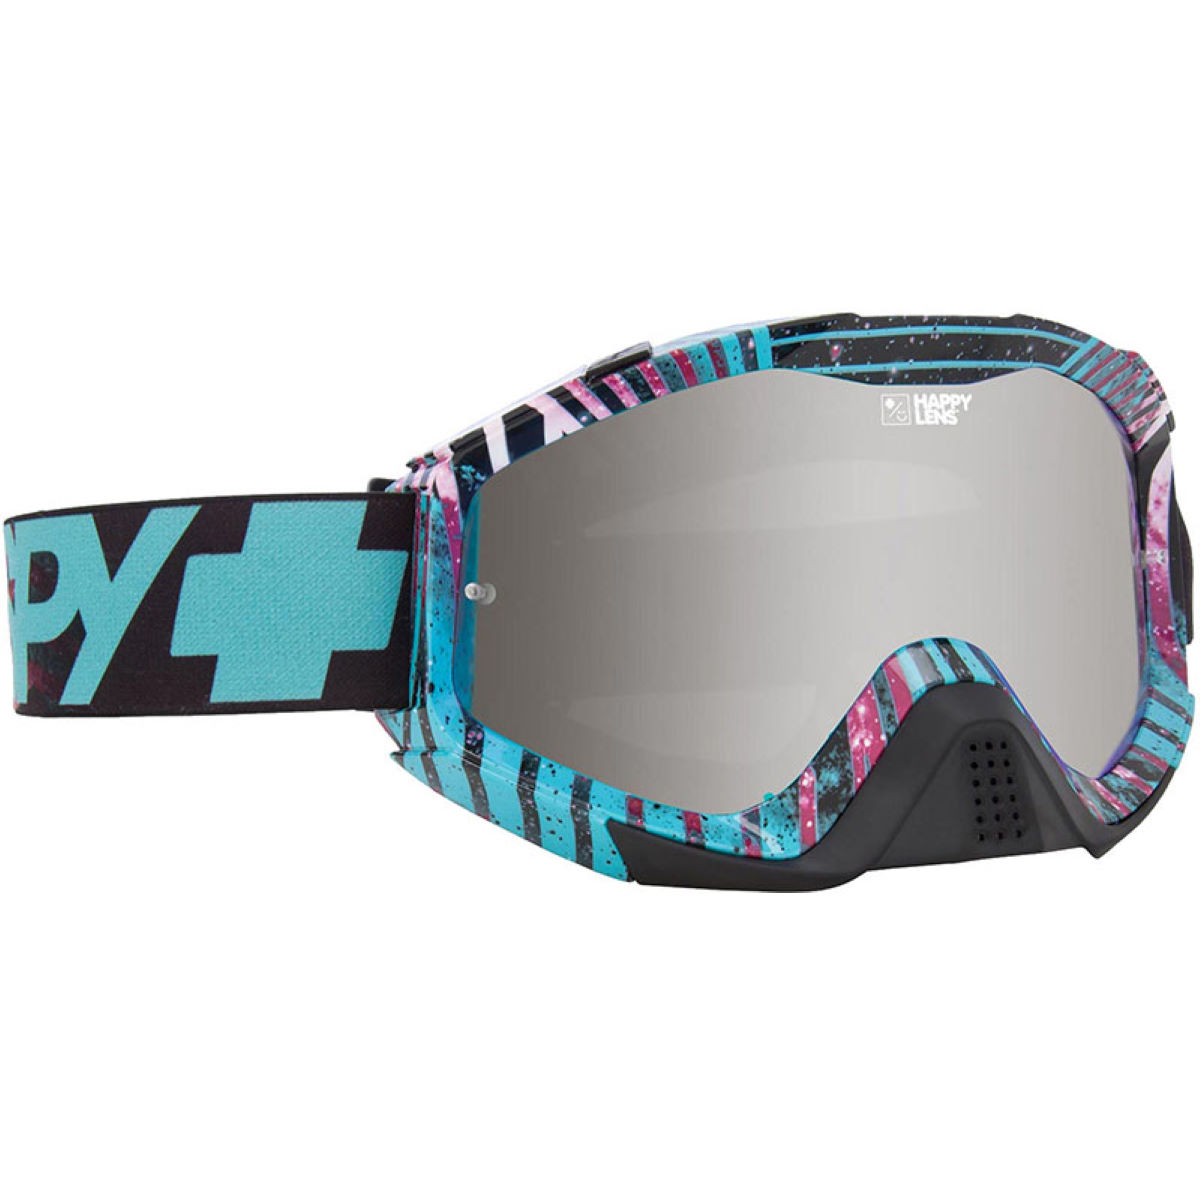 Spy Optic Klutch Goggle - Happy Lens - Máscaras de ciclismo